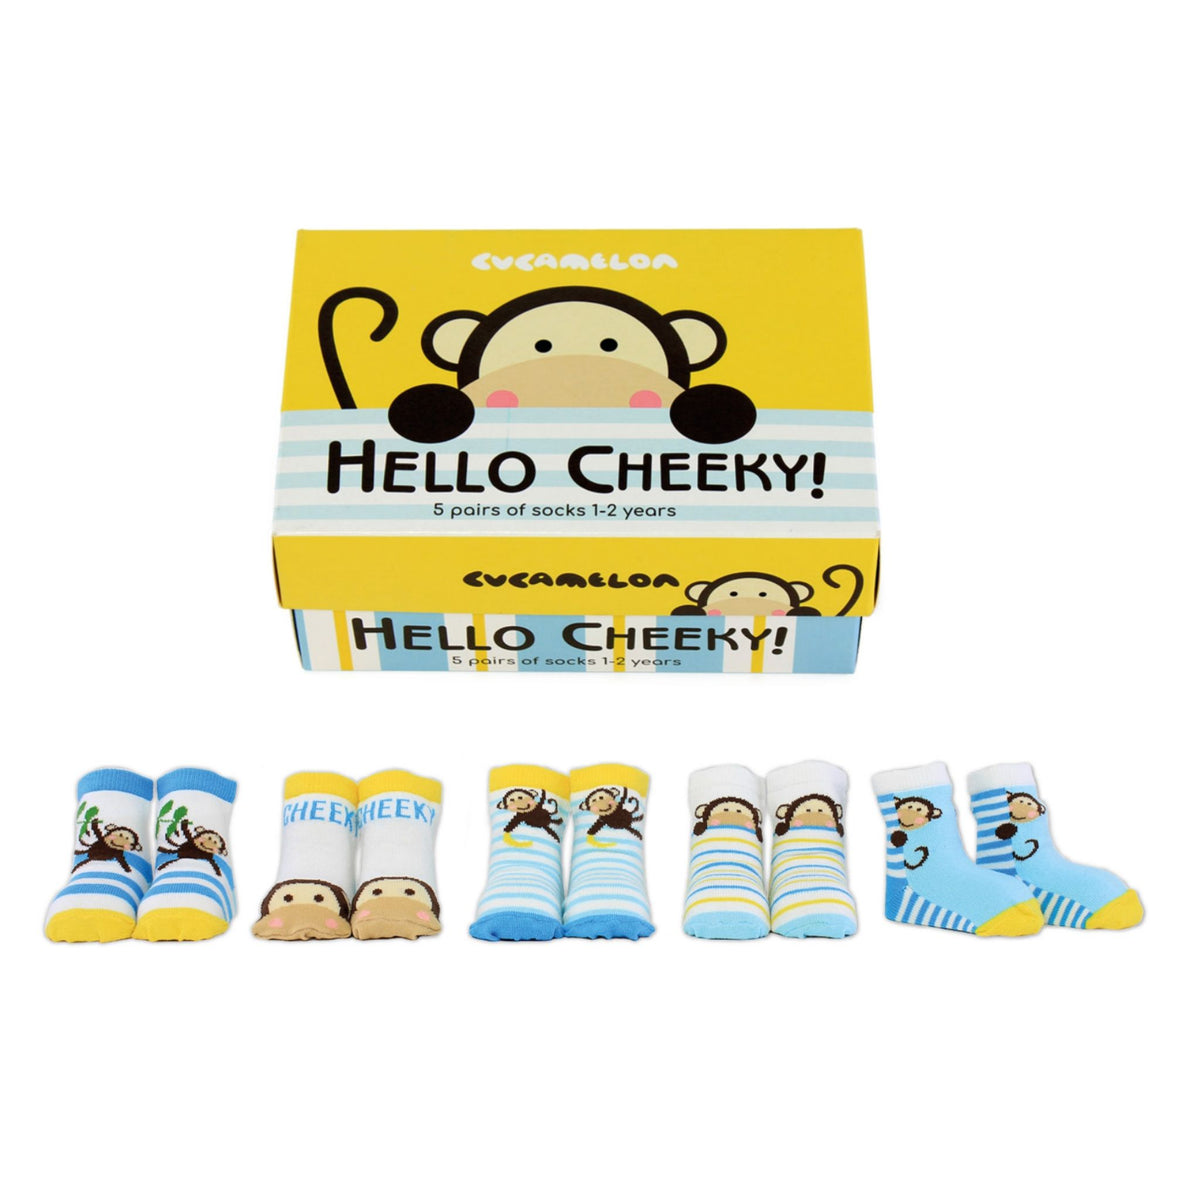 Hello Cheeky! Toddler Socks (Age 1-2 years)